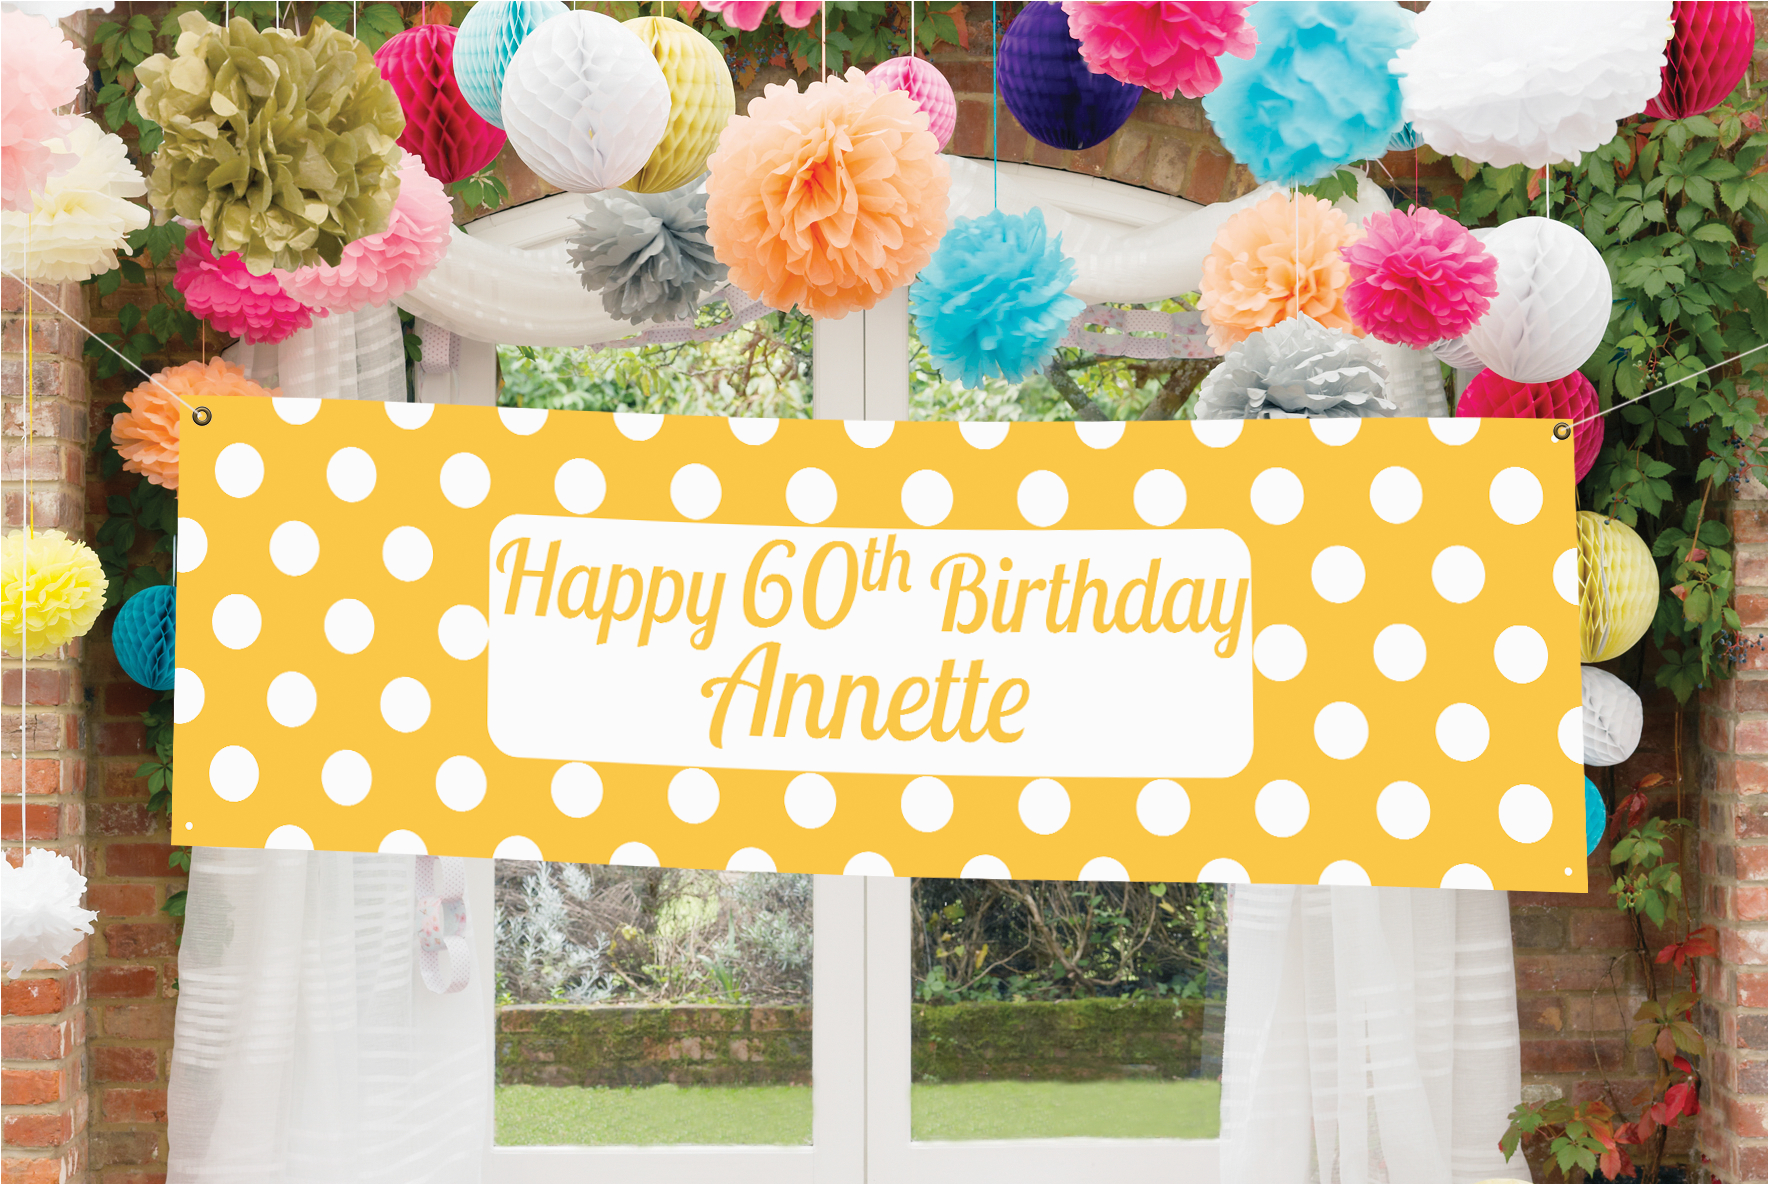 Party Decor Ideas For 60th Birthday Pieces Blog Inspiration